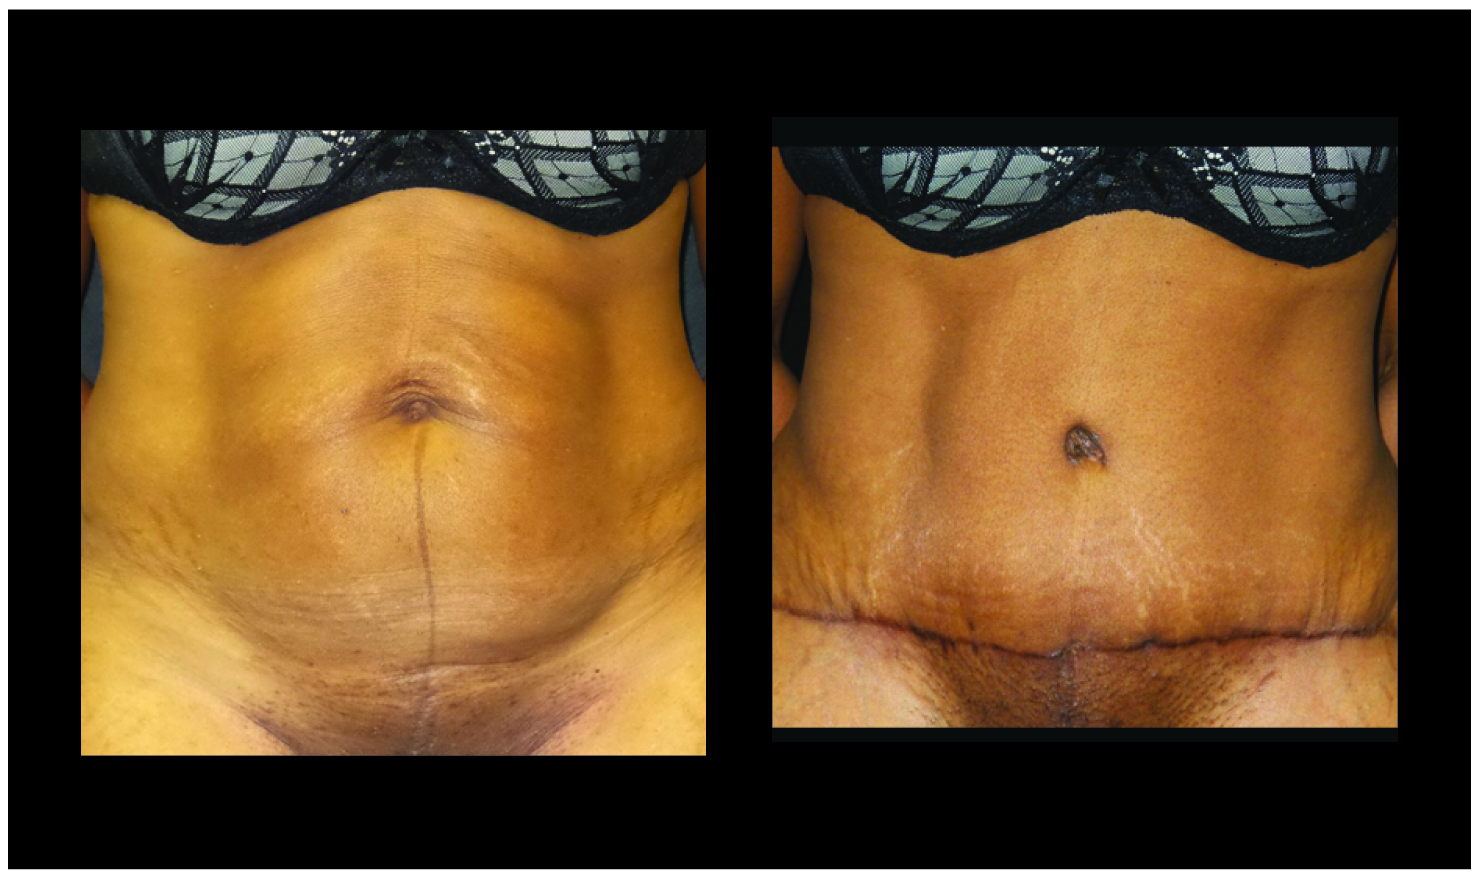 tummy tuck a cosmetic procedure A tummy tuck is a popular procedure to achieve a flat tummy with tightened skin get a tummy tuck from a leading nashville board-certified plastic surgeon.